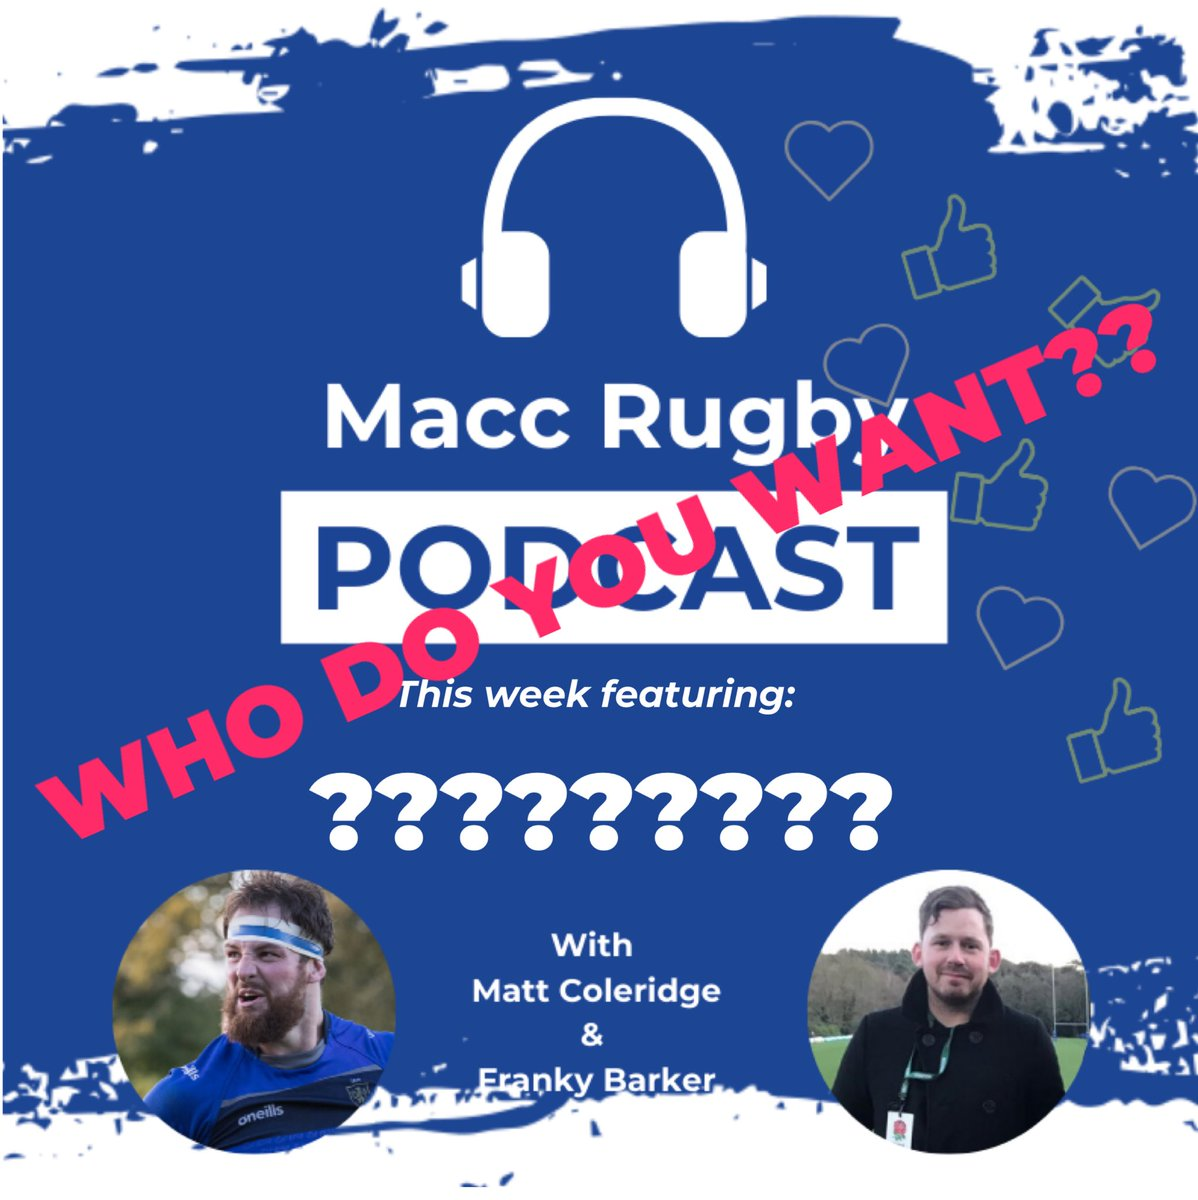 test Twitter Media - POD NEWS!! So we are handing over production duties to you the listener!! Let us know who you want to hear from in the club! Who deserves a mention and dragging on the pod? Who would make a good interviewer?!  Let us know and we will make it happen!!! #maccrugbypod https://t.co/tvk62S470H